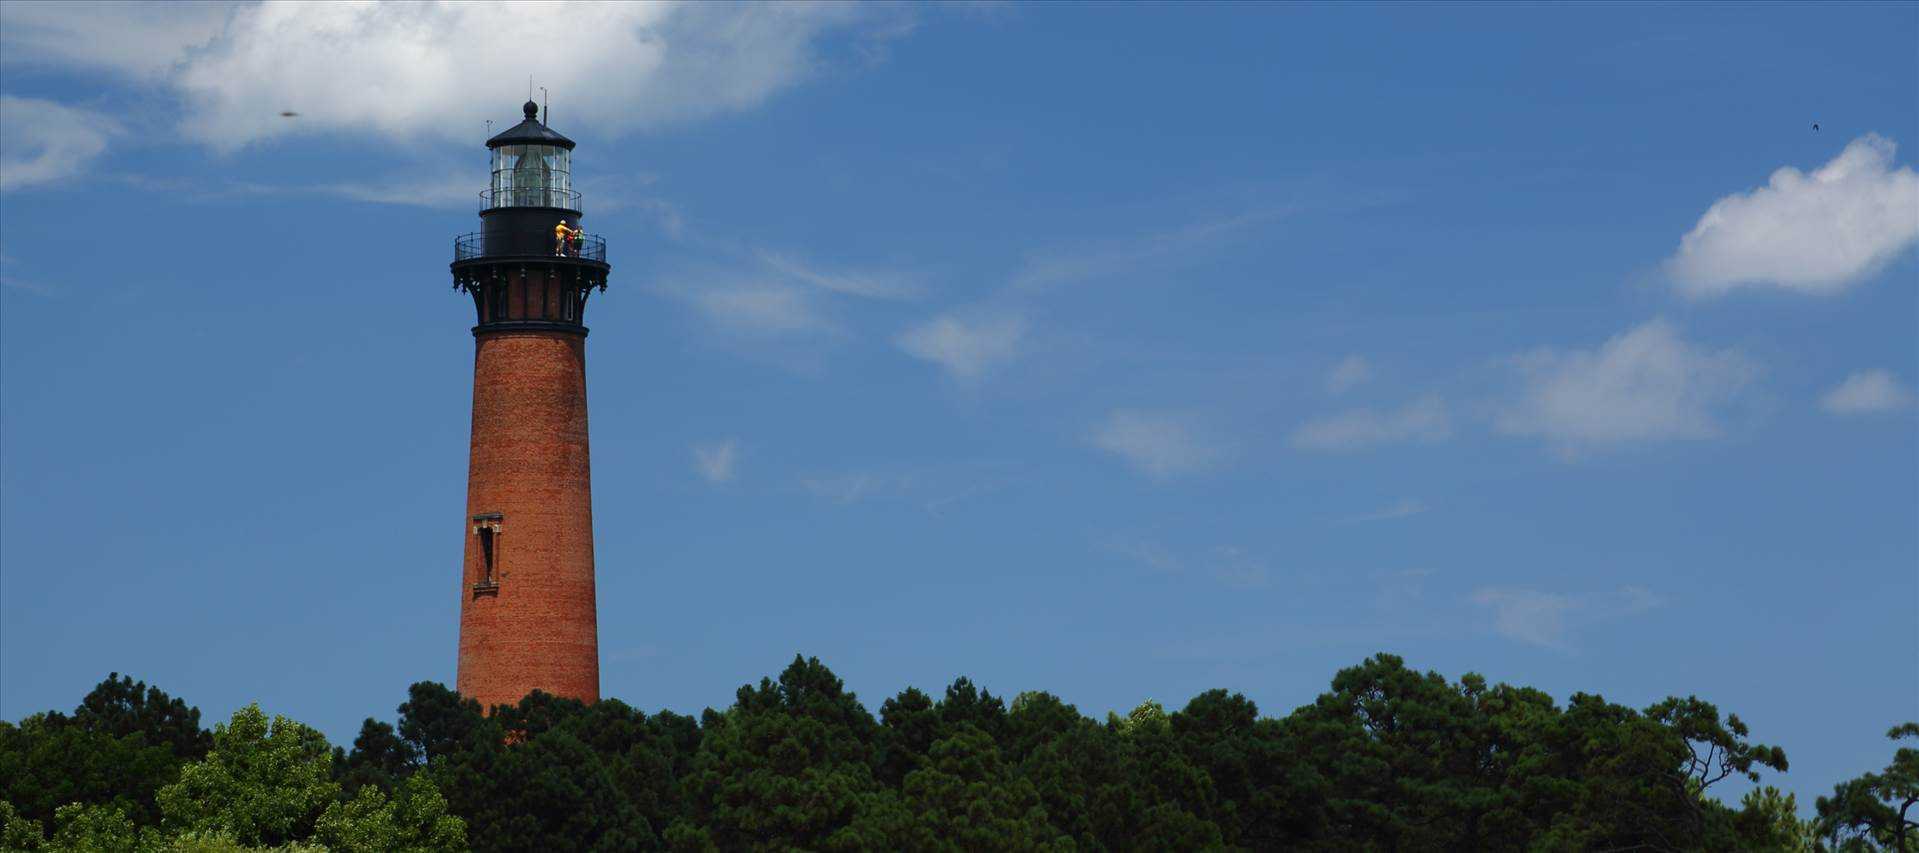 Currituck Lighthouse From Afar - Currituck, North Carolina Lighthouse by D Scott Smith